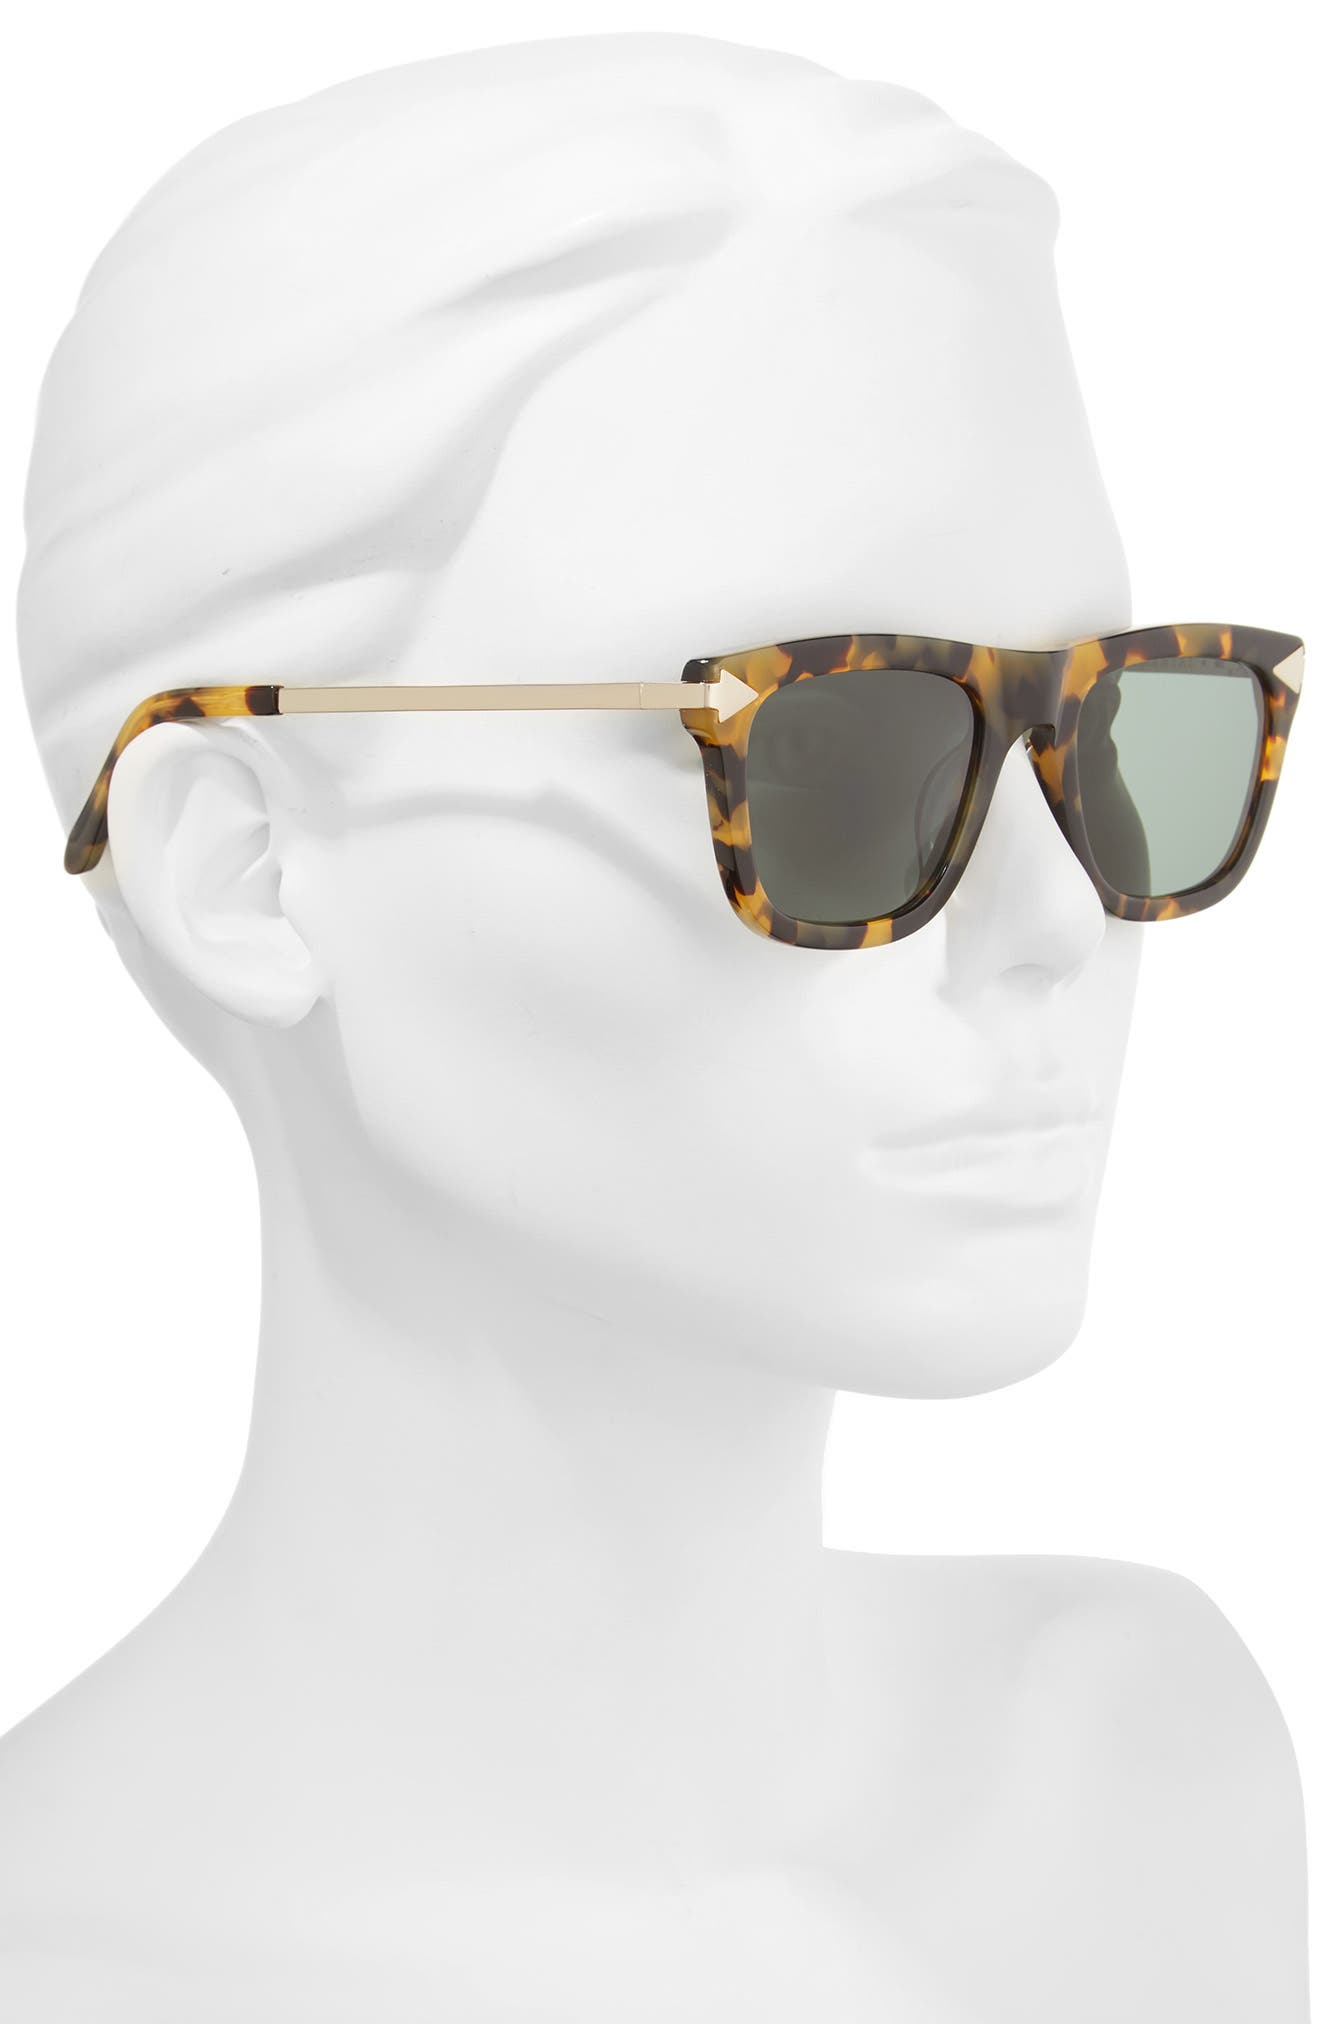 x Monumental Voltaire 51mm Polarized Sunglasses,                             Alternate thumbnail 2, color,                             Crazy Tortoise